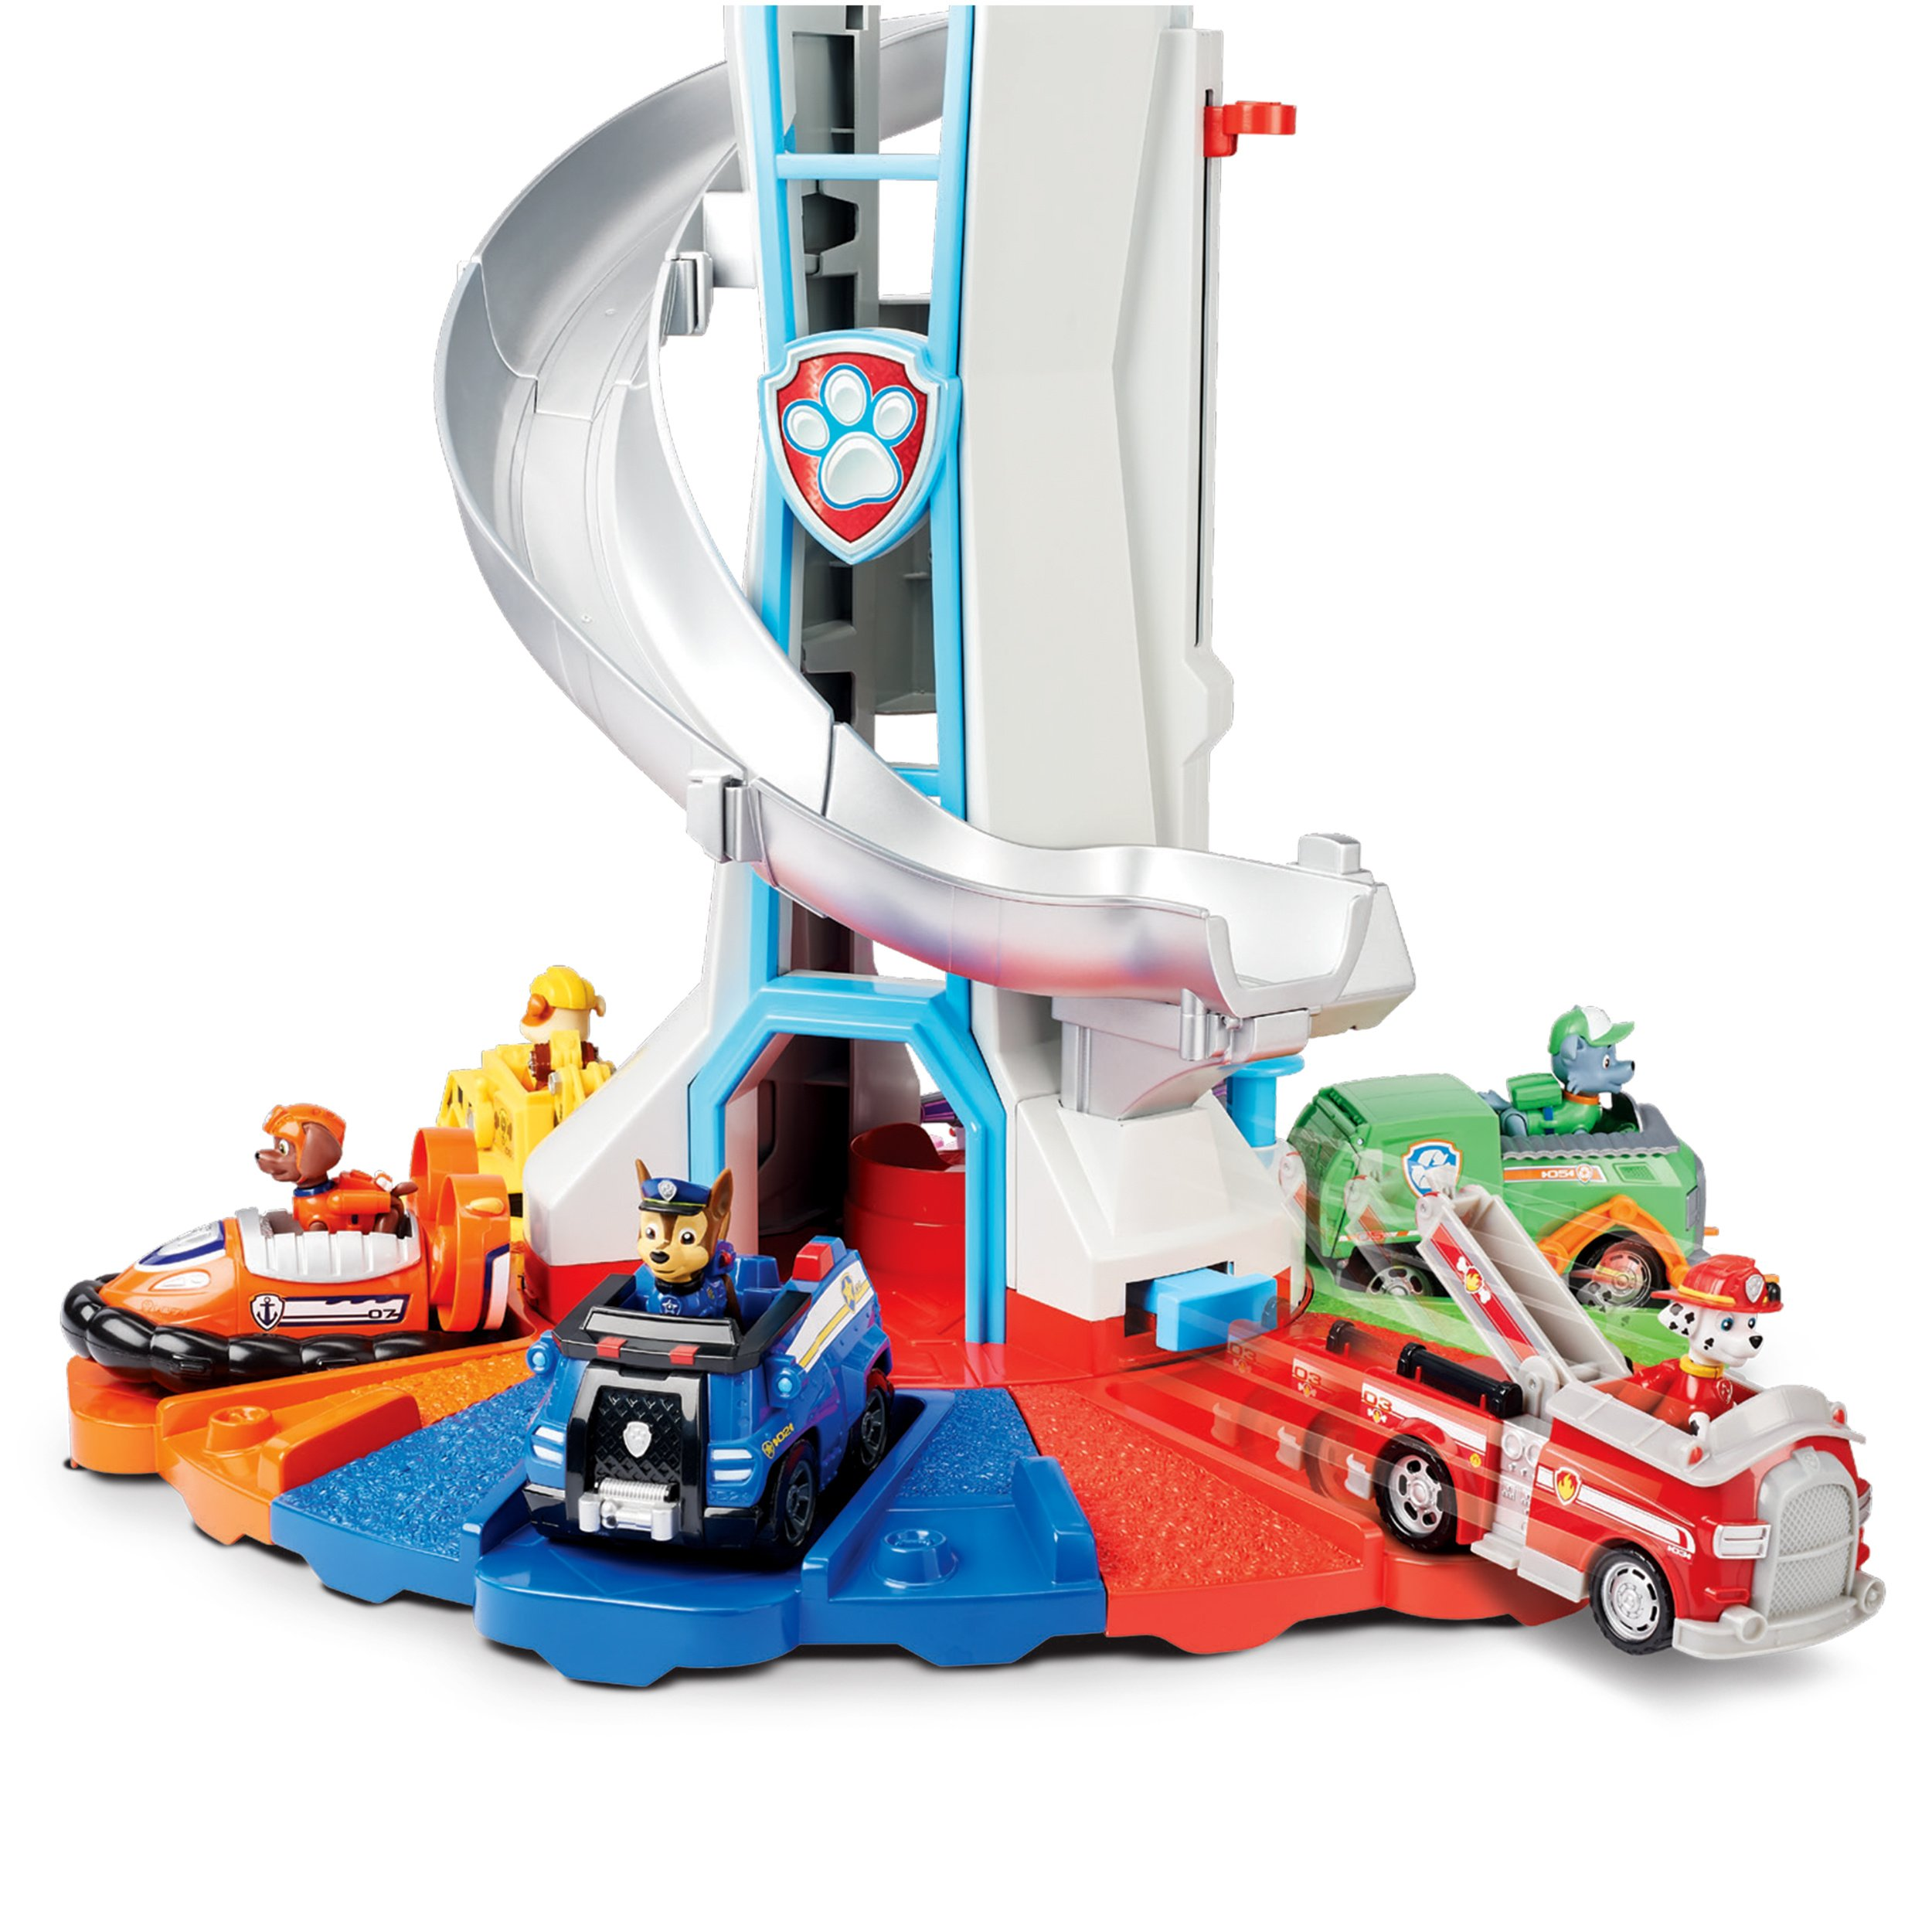 PAW Patrol My Size Lookout Tower with Exclusive Vehicle, Rotating Periscope & Lights & Sounds by Nickelodeon (Image #5)